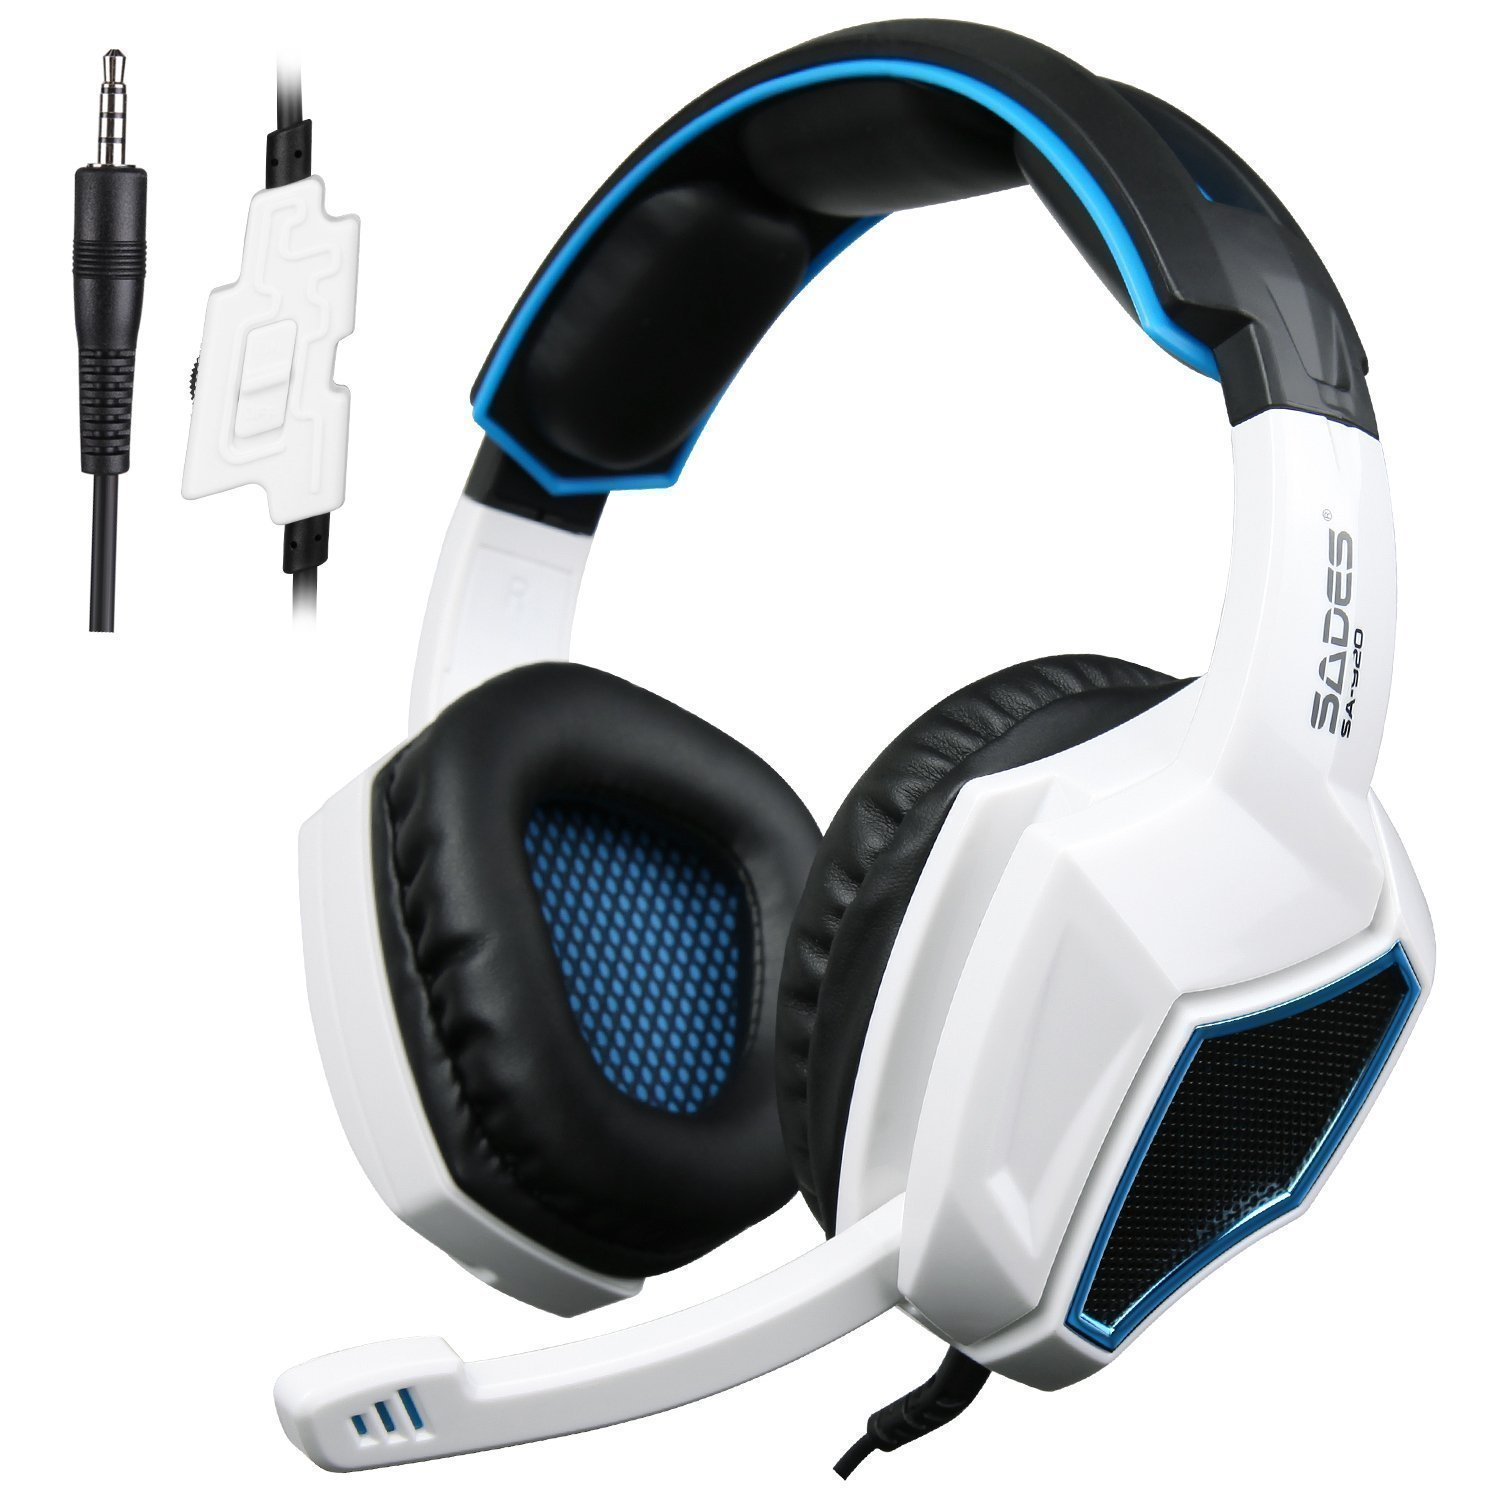 Sades SA920 3.5mm Wired Stereo Gaming Over Ear Headset with Microphone and Revolution Volume Control for Xbox One / Xbox 360 / PS4 / PC /Cell phones / iPad (Black/White) by SADES